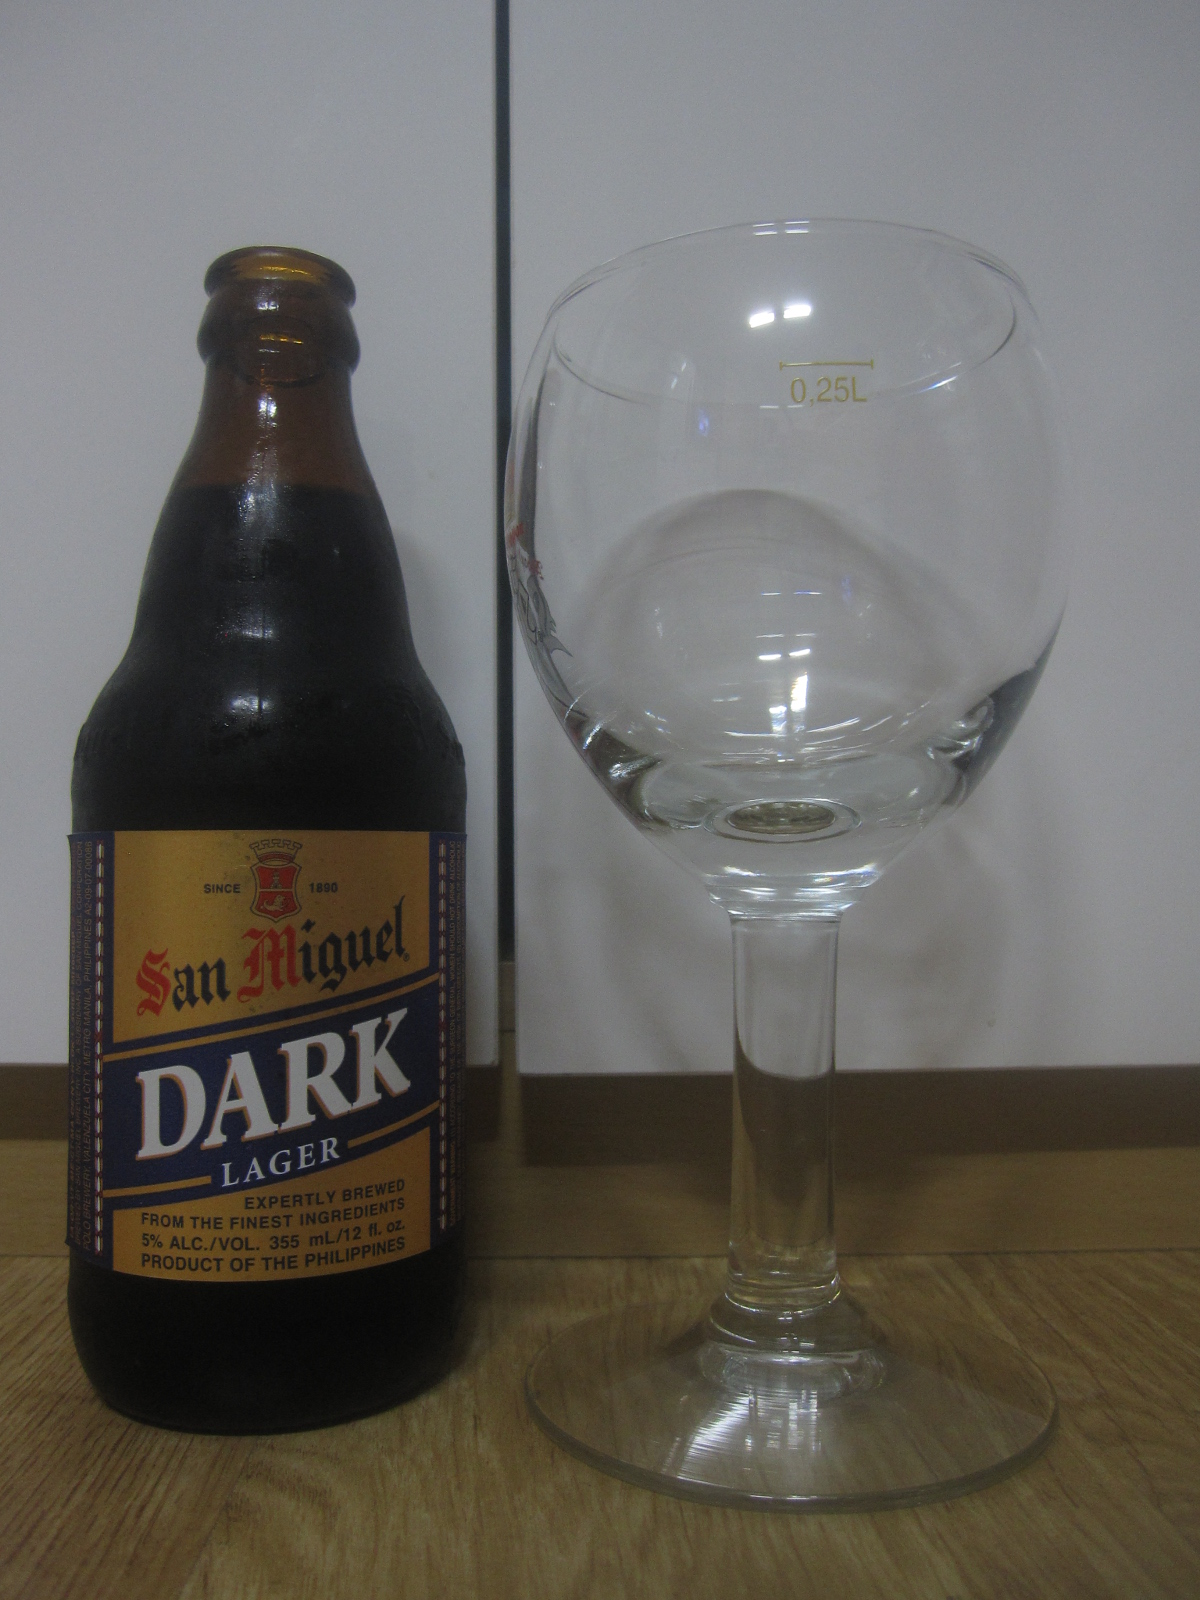 [필리핀] San Miguel Dark Larger(산미구엘 ..